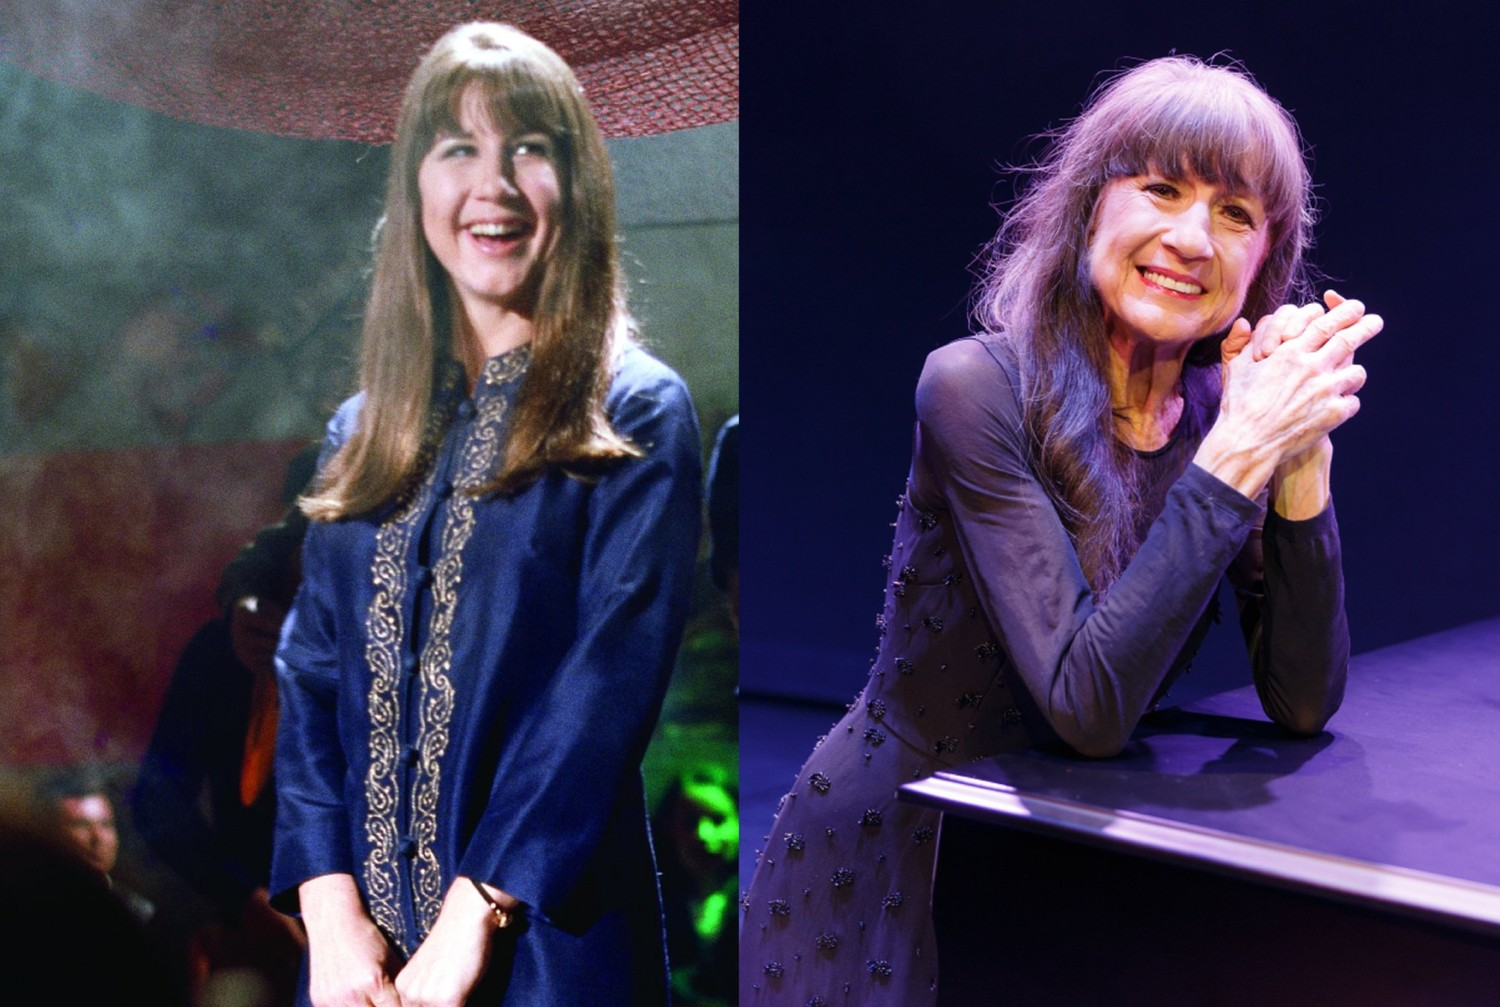 Judith Durham, lead singer of late 60s music group The Seekers, then and now.